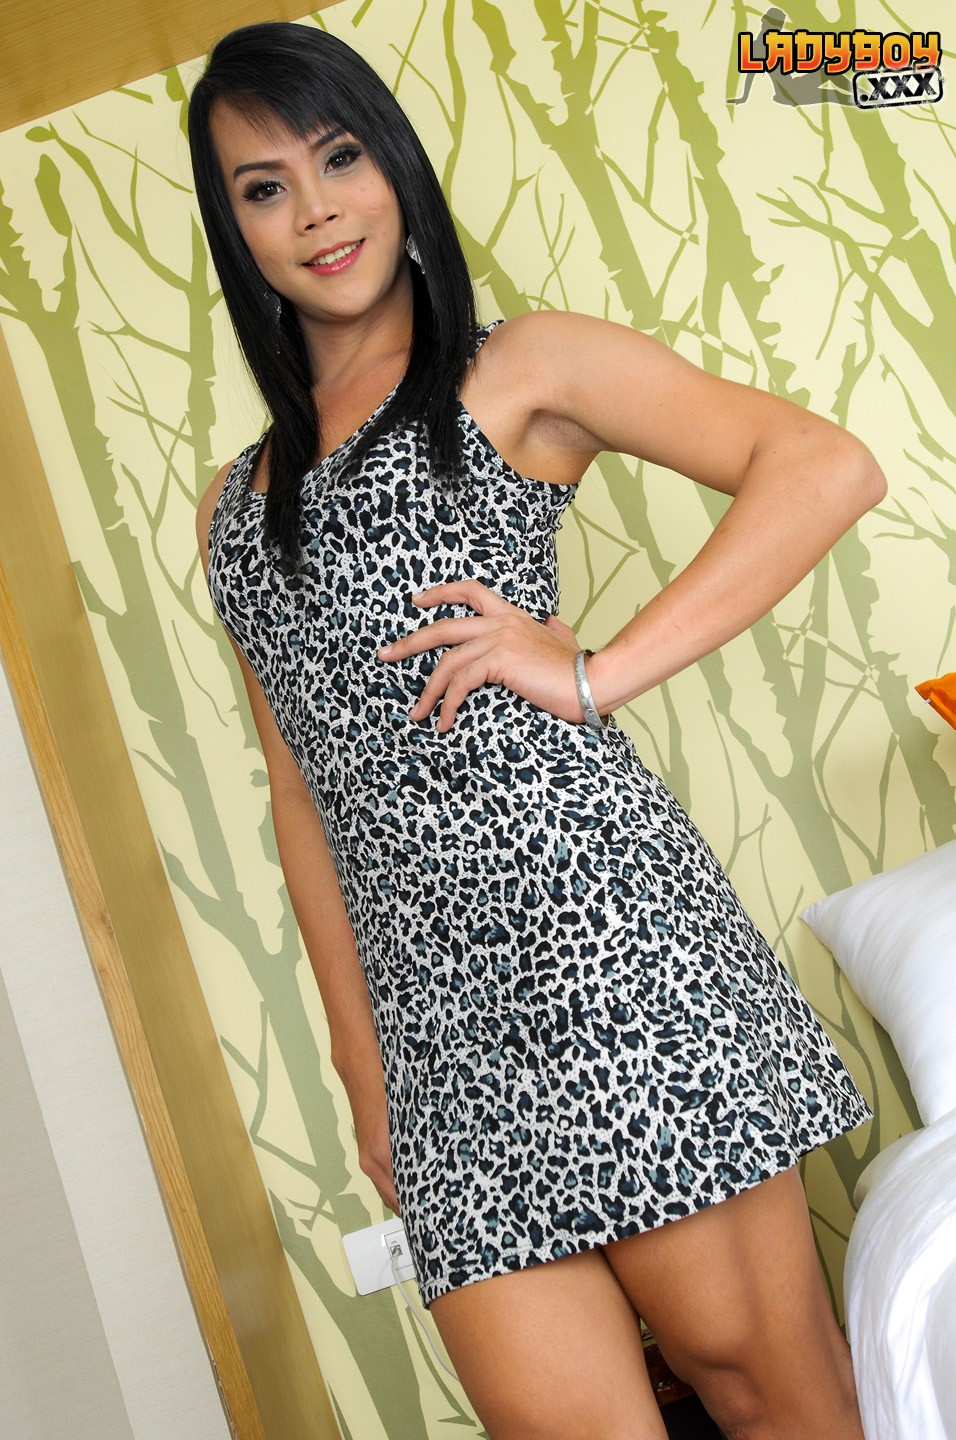 Ls- nude imagesize:956x1440 10 10 10 10 10 10 03 Natty is a confident and outgoing girl who will greet you with a smile  every time